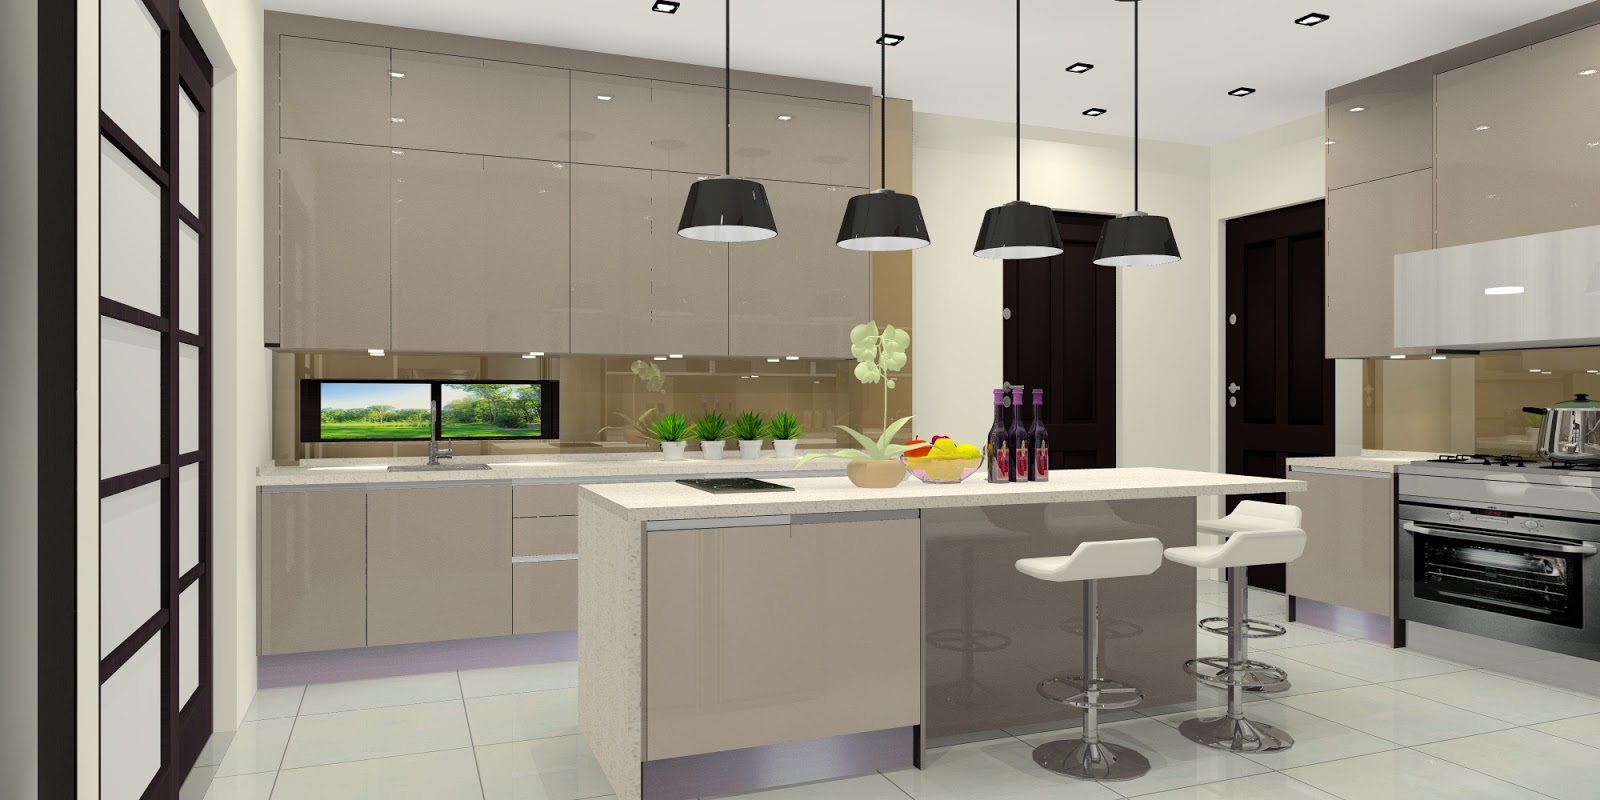 ceiling high kitchen cabinets meridian interior design and kitchen design in kuala 5149